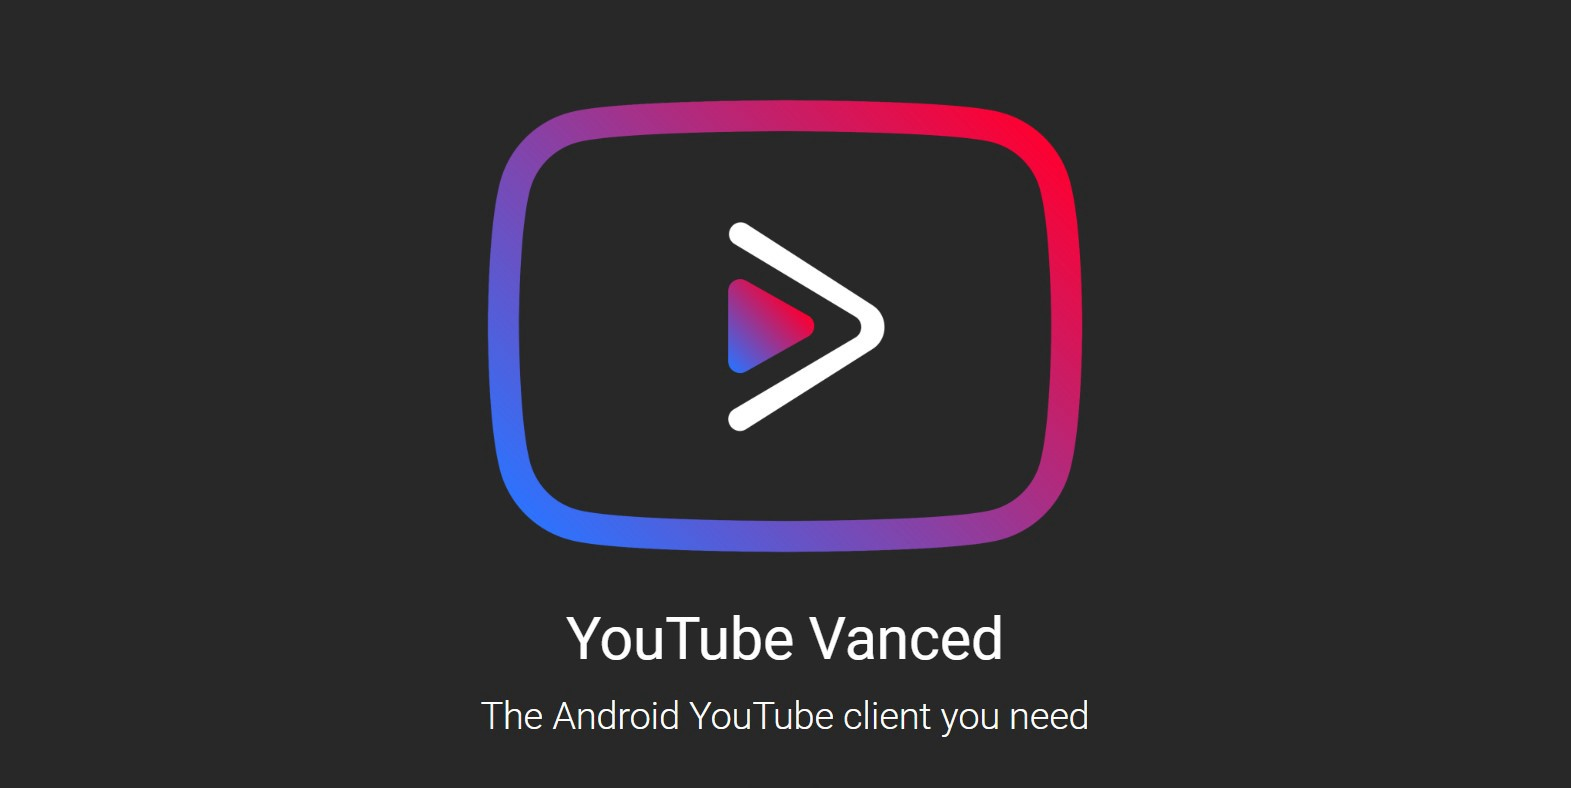 Download Youtube Vanced APK 2020(non-root, step-by-step guide) | by  Multimedia Engineers | Medium